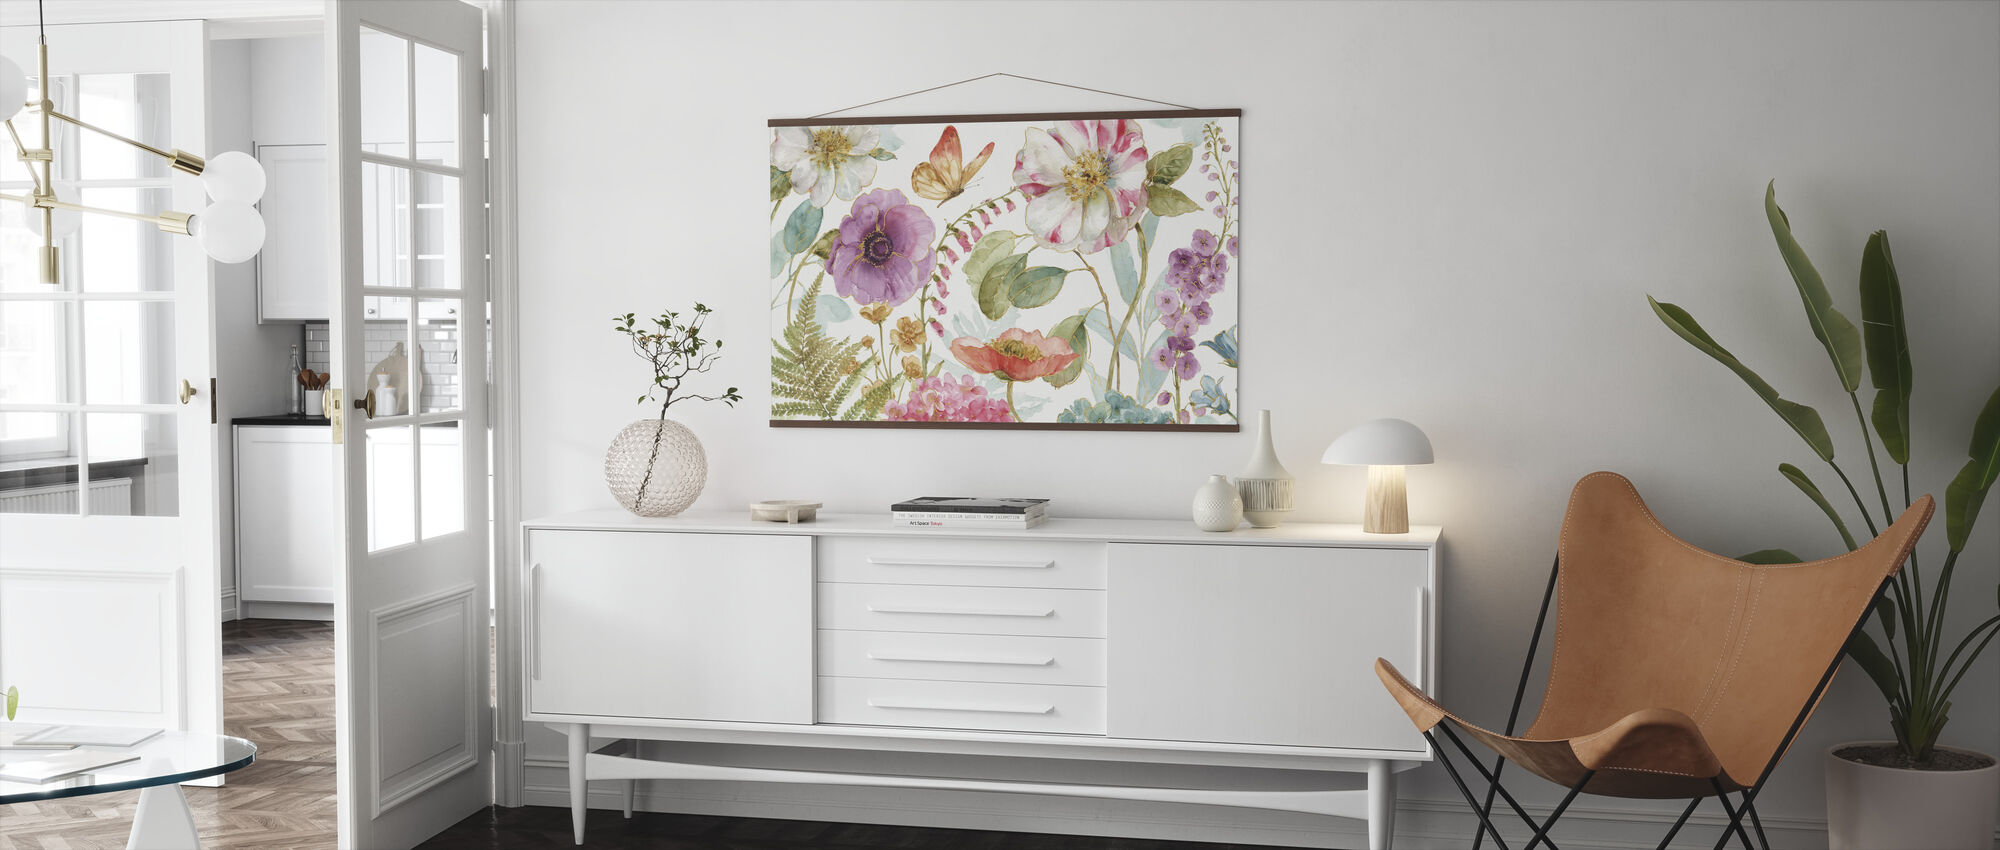 Rainbow Seeds Flowers 1 - Poster - Living Room